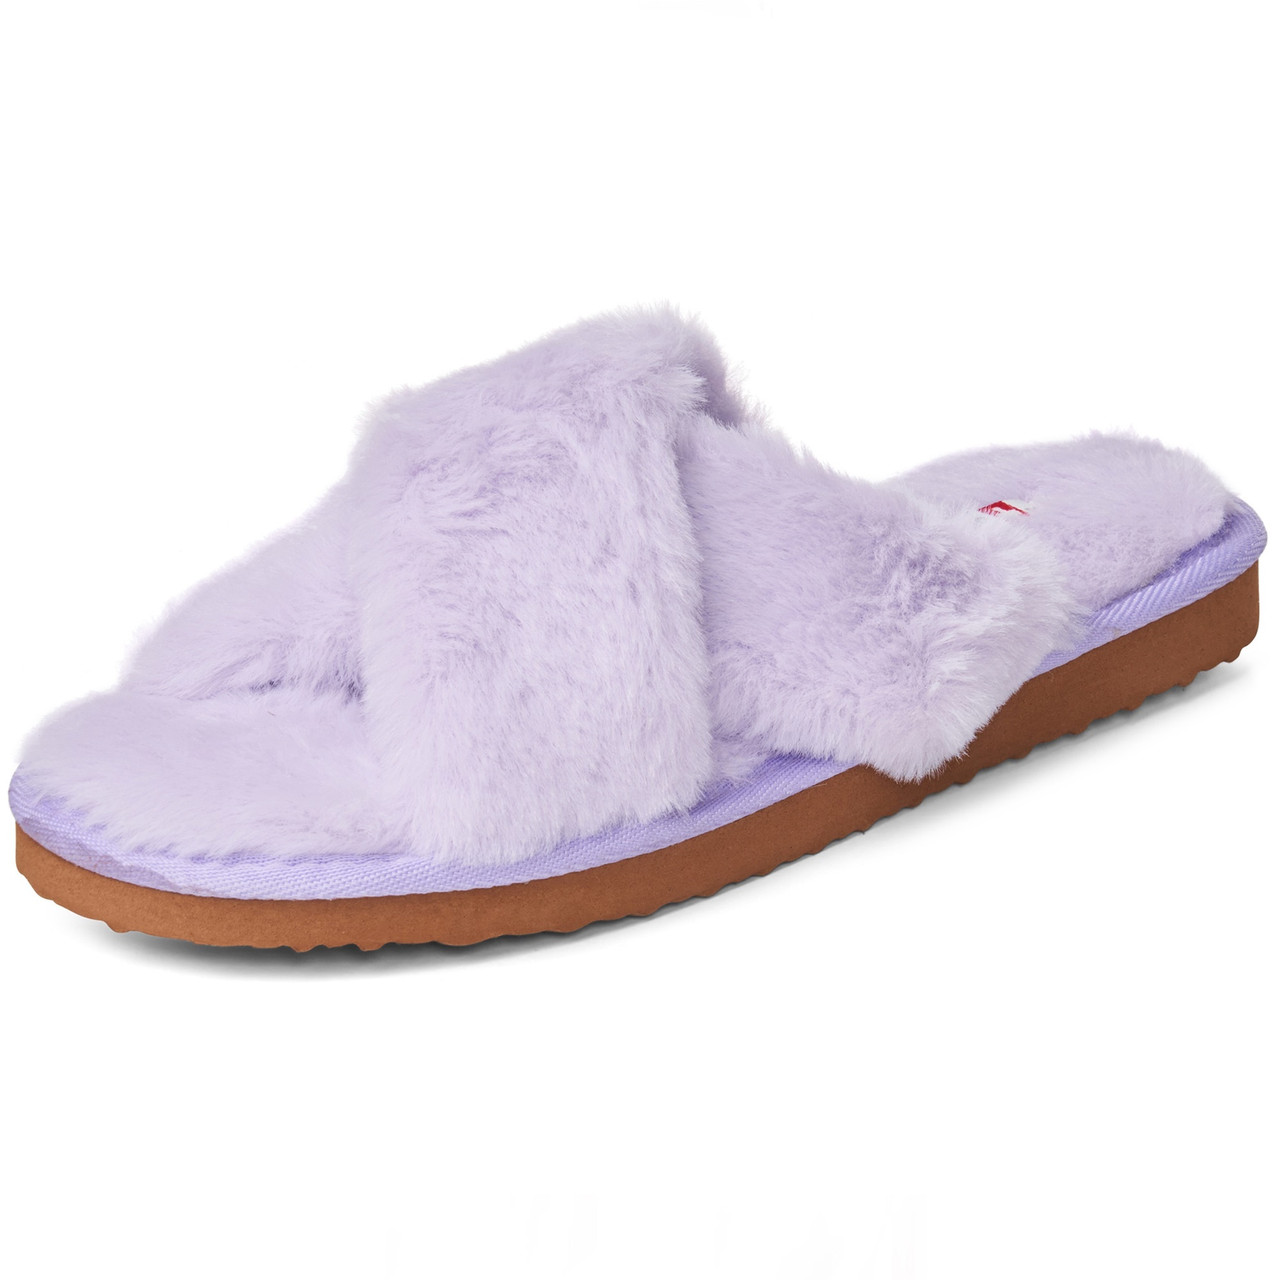 Toddler Size 9 Soft Soled Indoor Shoes Leopard Slippers